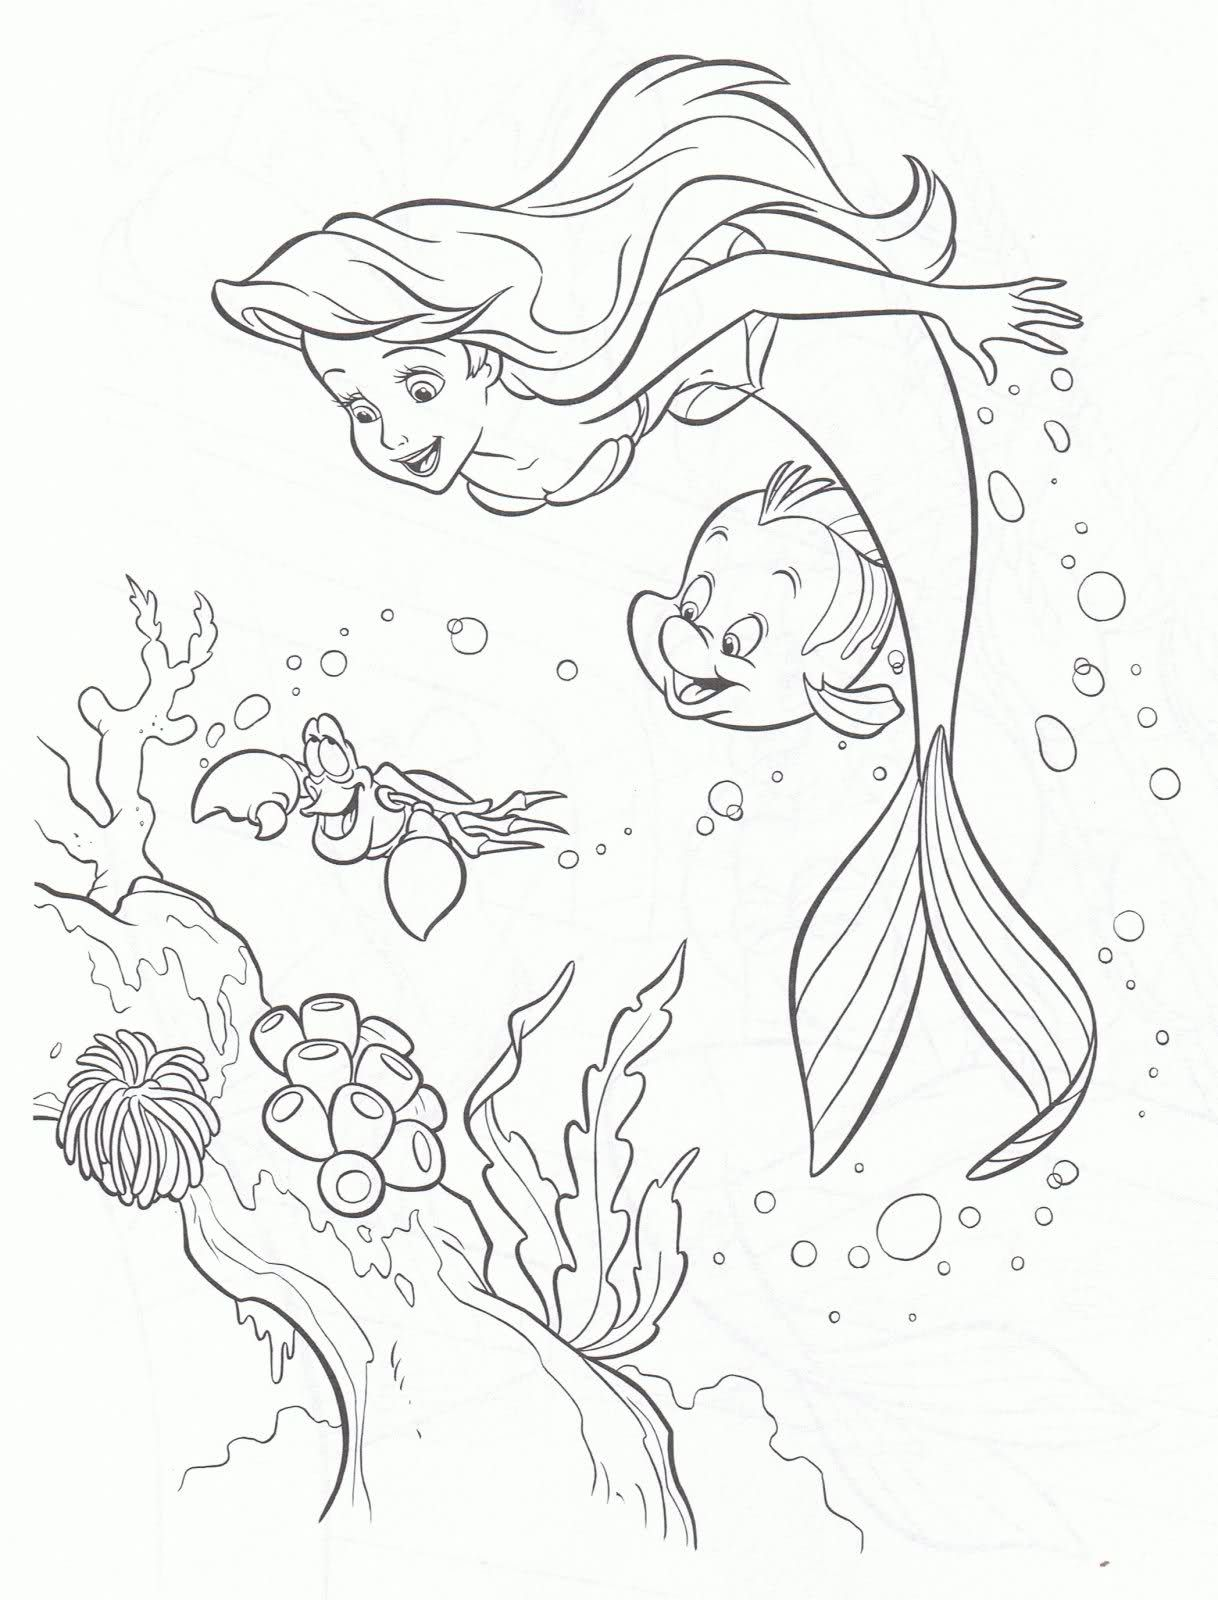 Ariel Colouring Pages 3 Con Imagenes Colorear Disney Paginas